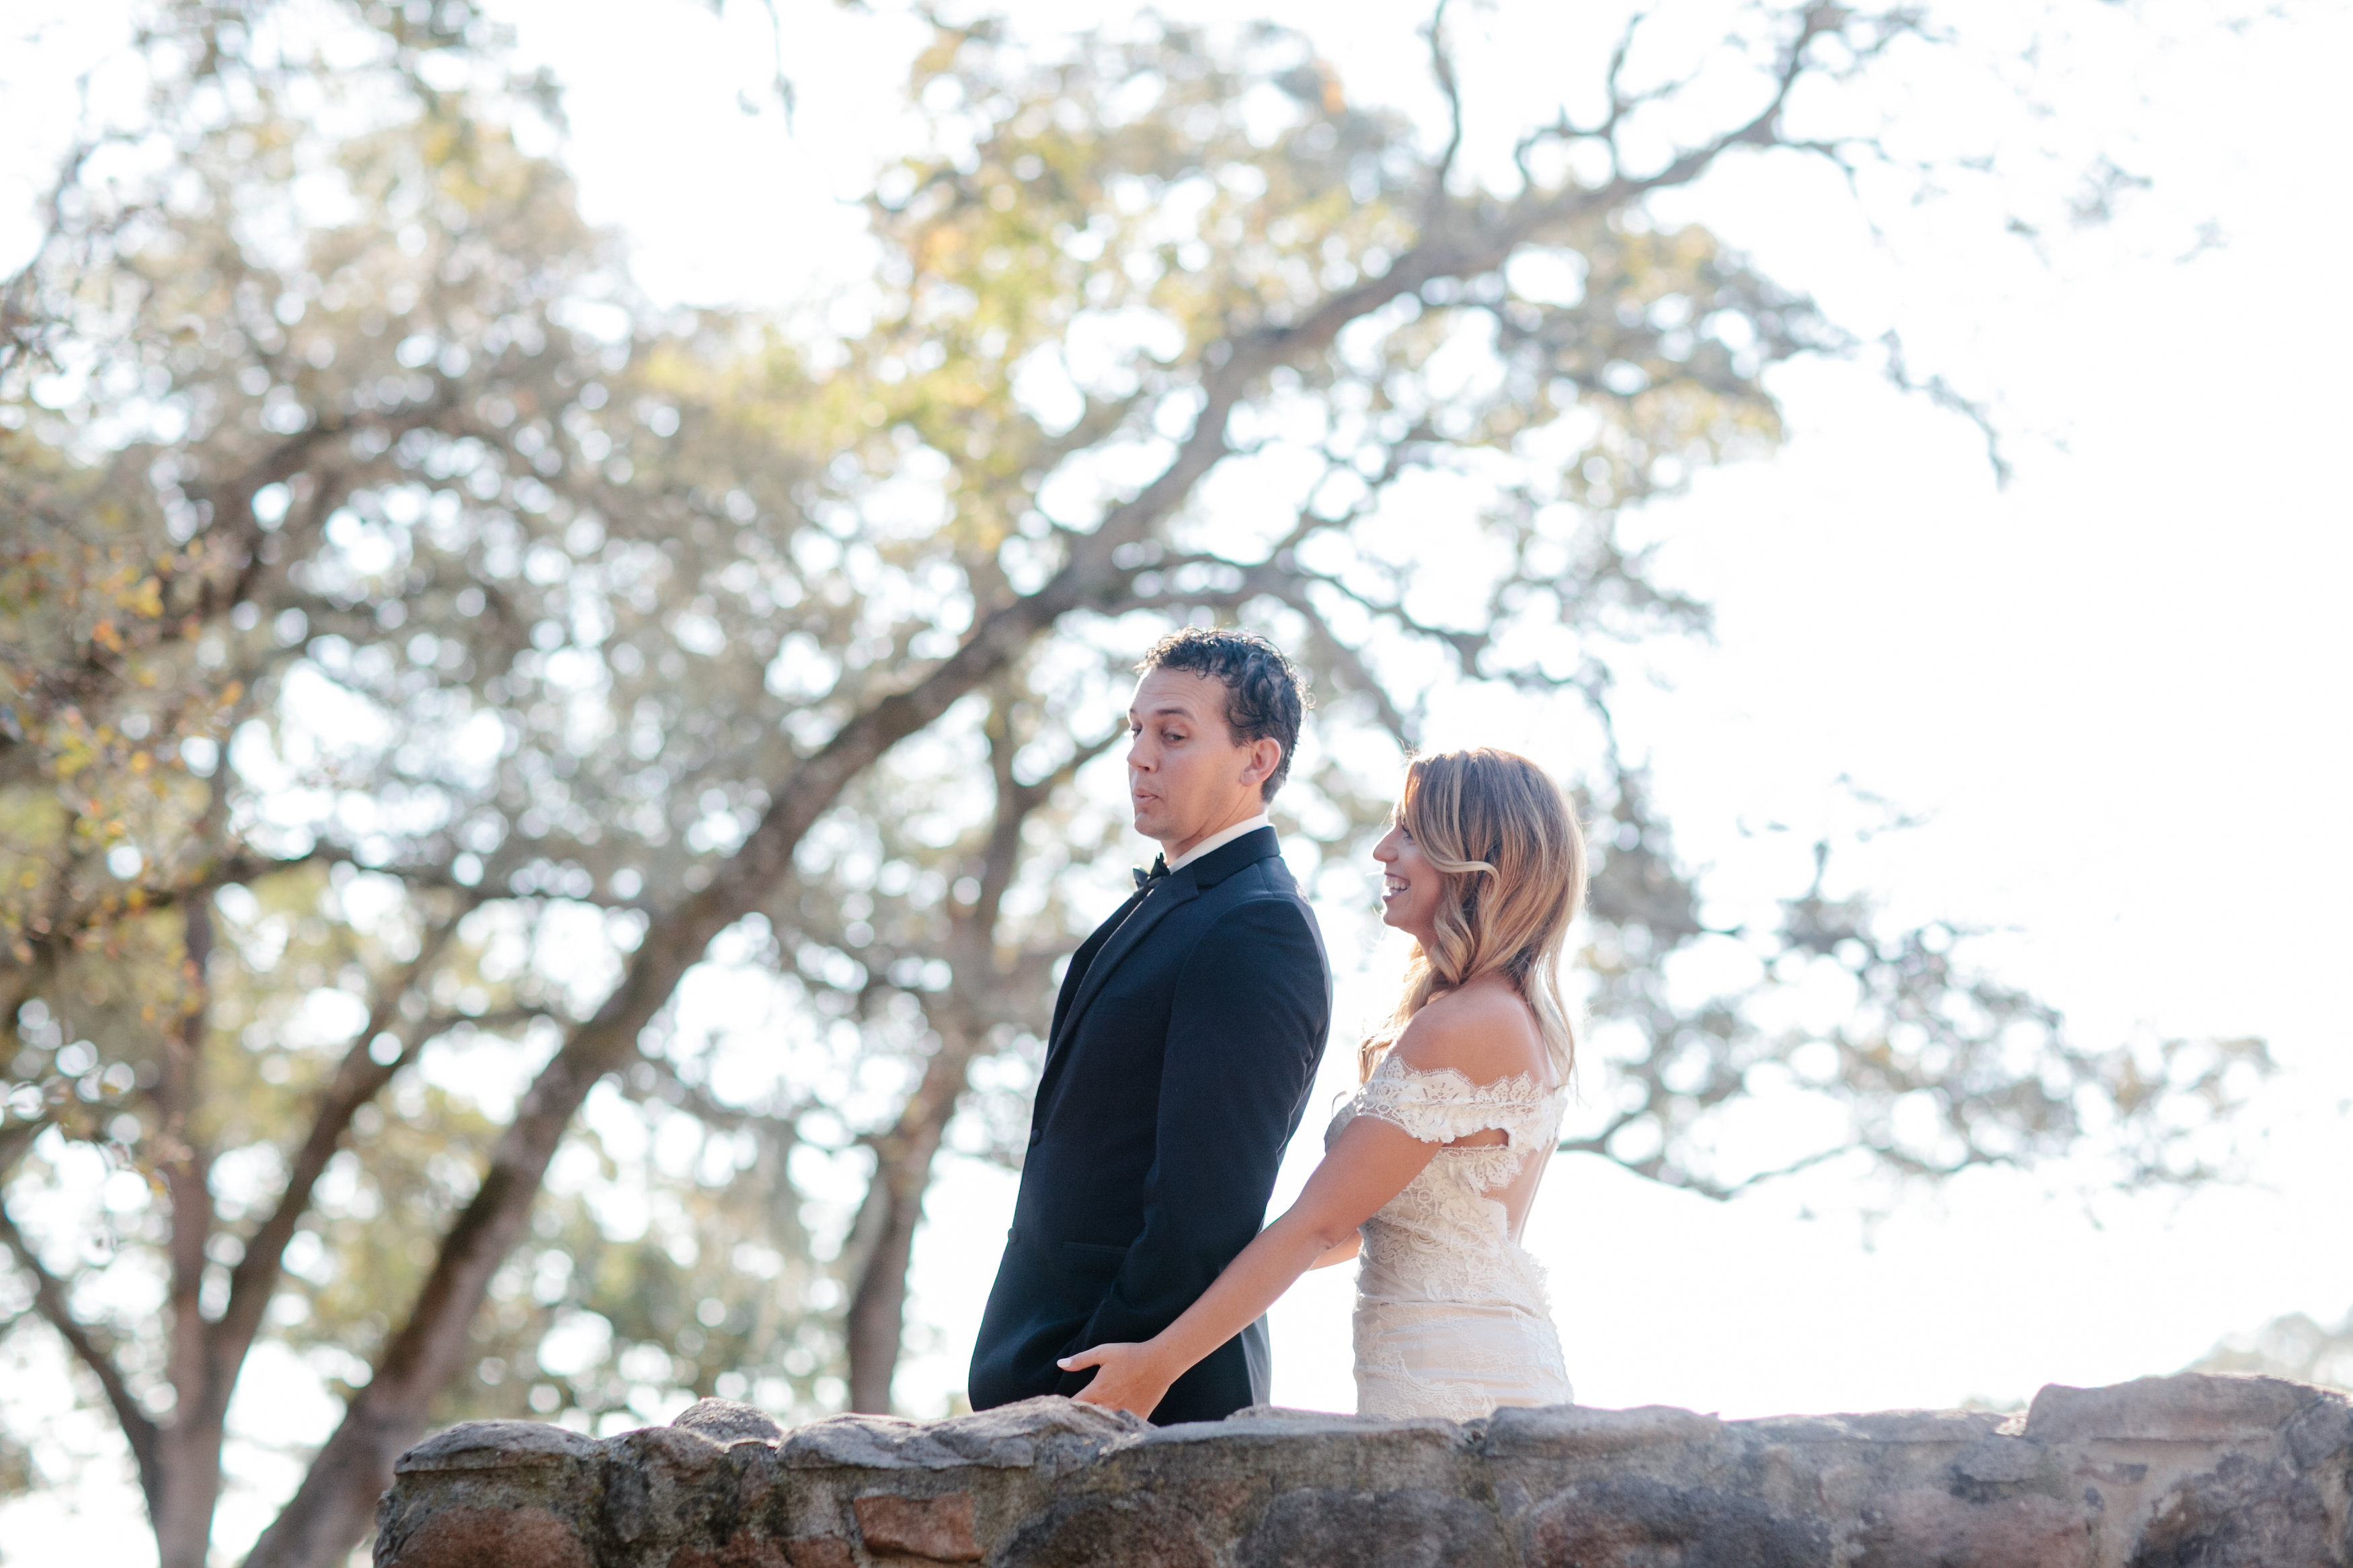 Nicole Eachus wedding, Napa valley wedding, st Helena wedding